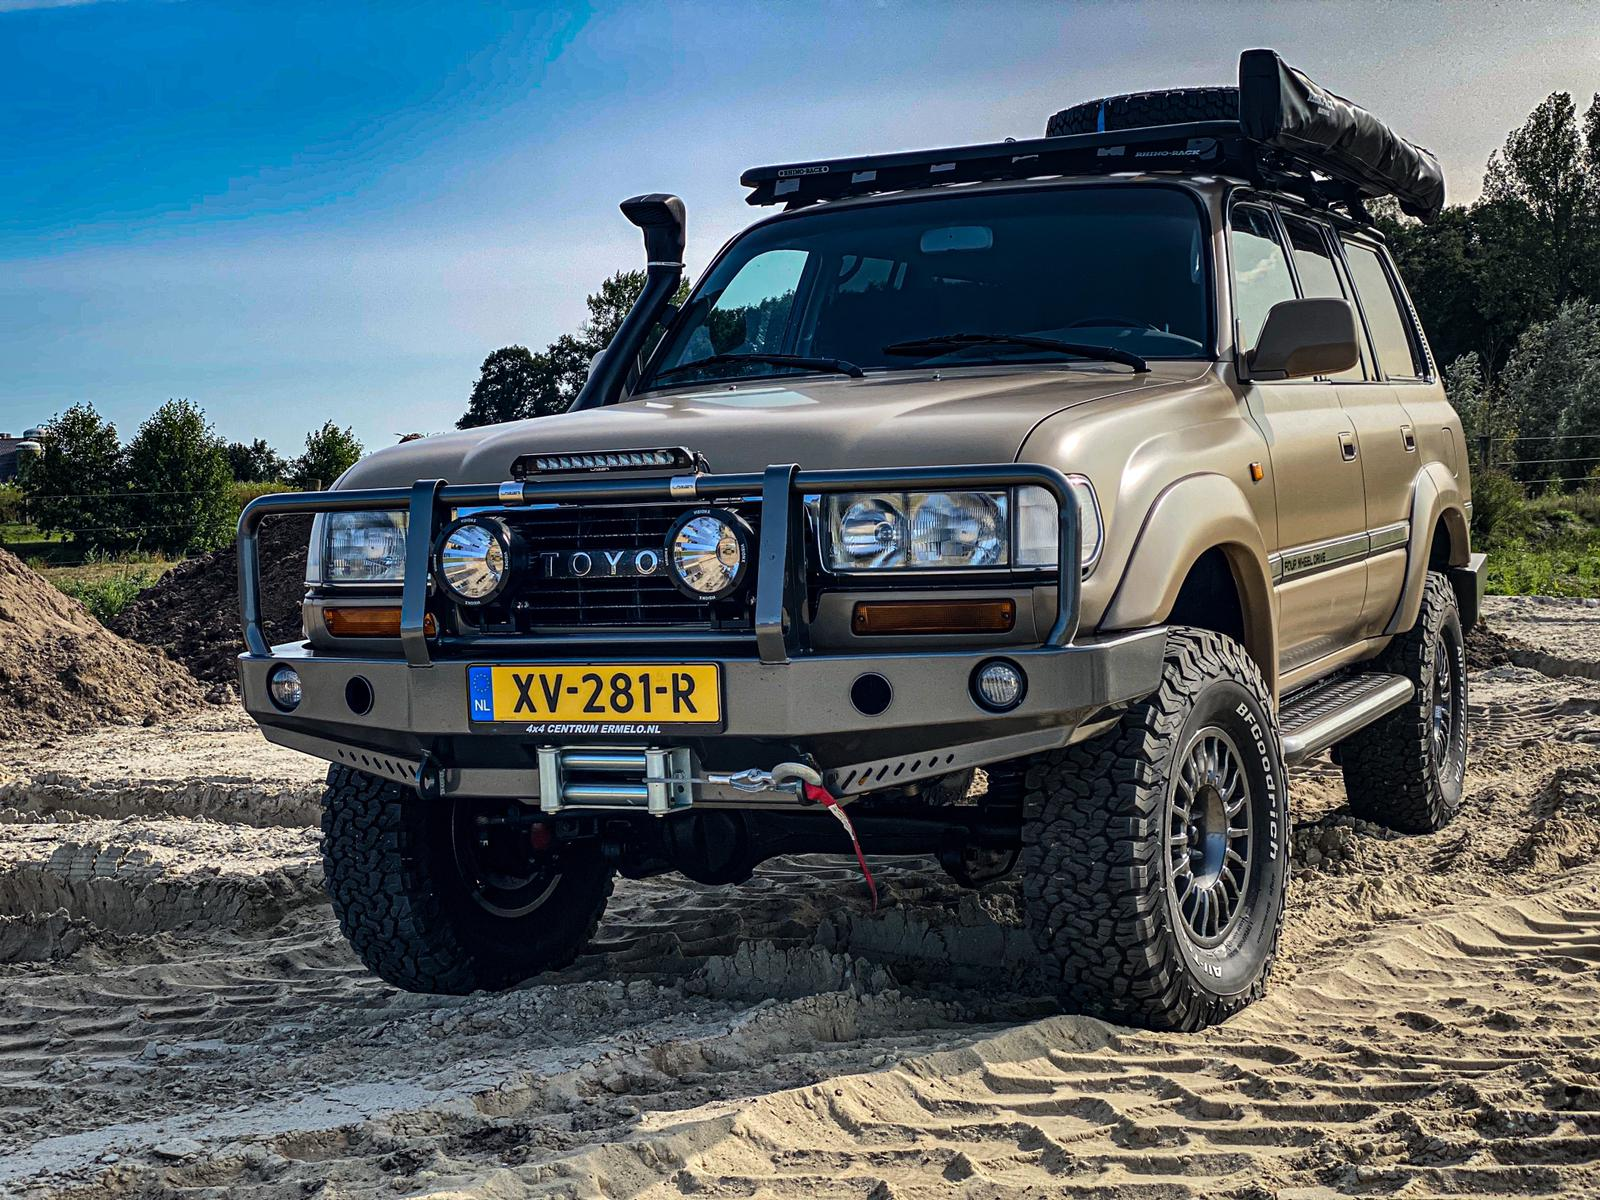 full wrap, landcruiser, werner budding